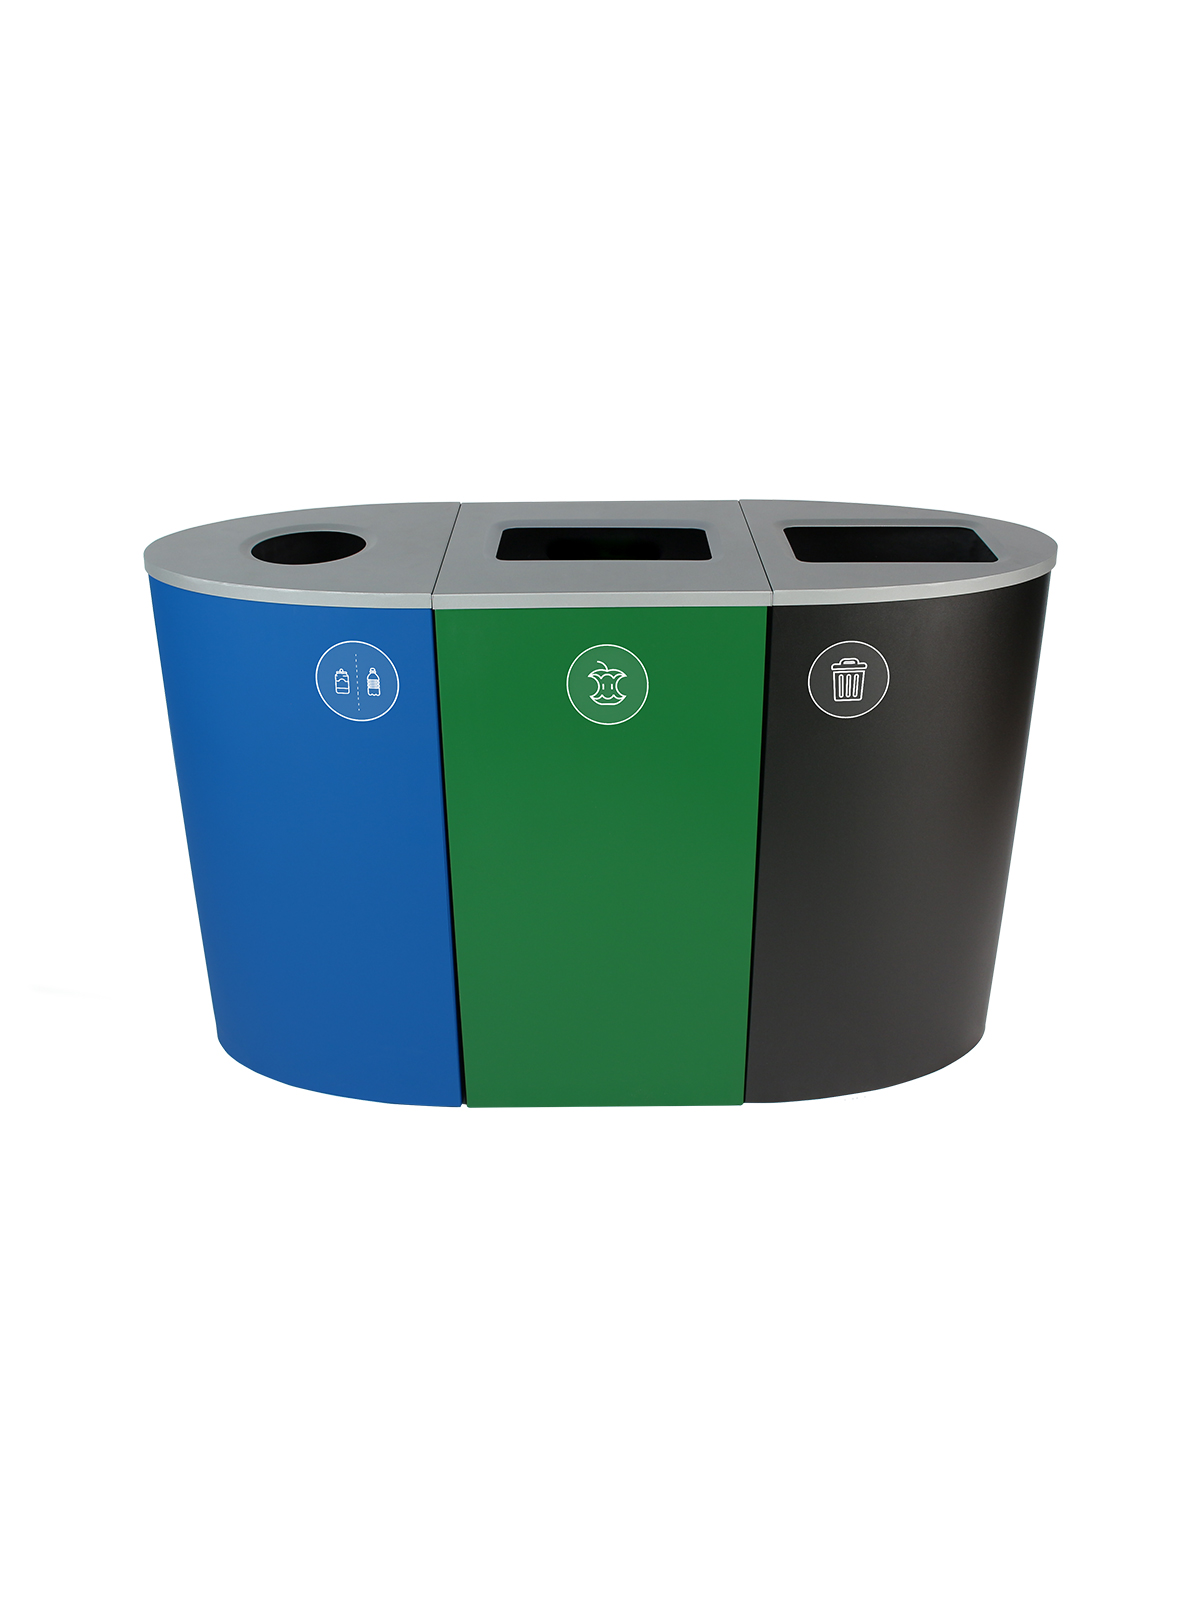 SPECTRUM - Triple - California Compliant - Cans & Bottles-Compost-Trash - Circle-Full - Blue-Green-Black